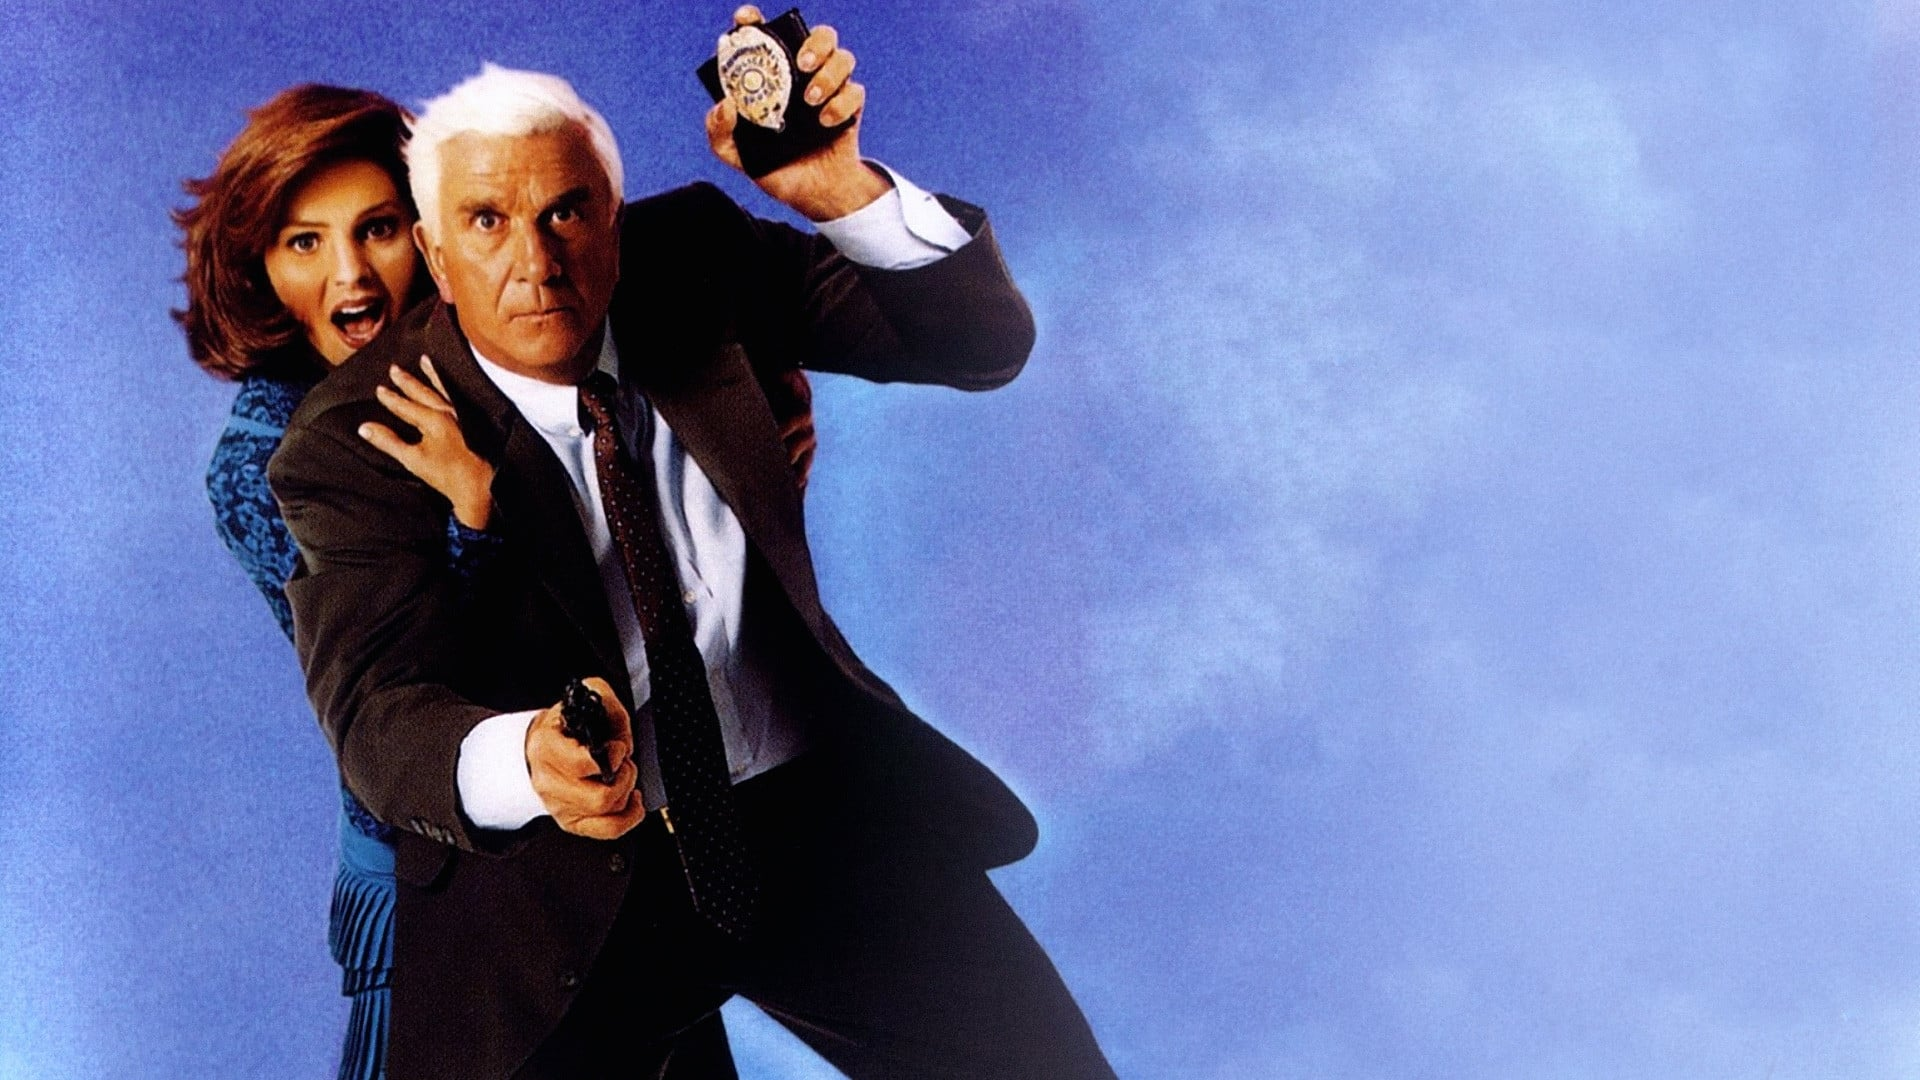 So How Many People Here Like The Naked Gun Images